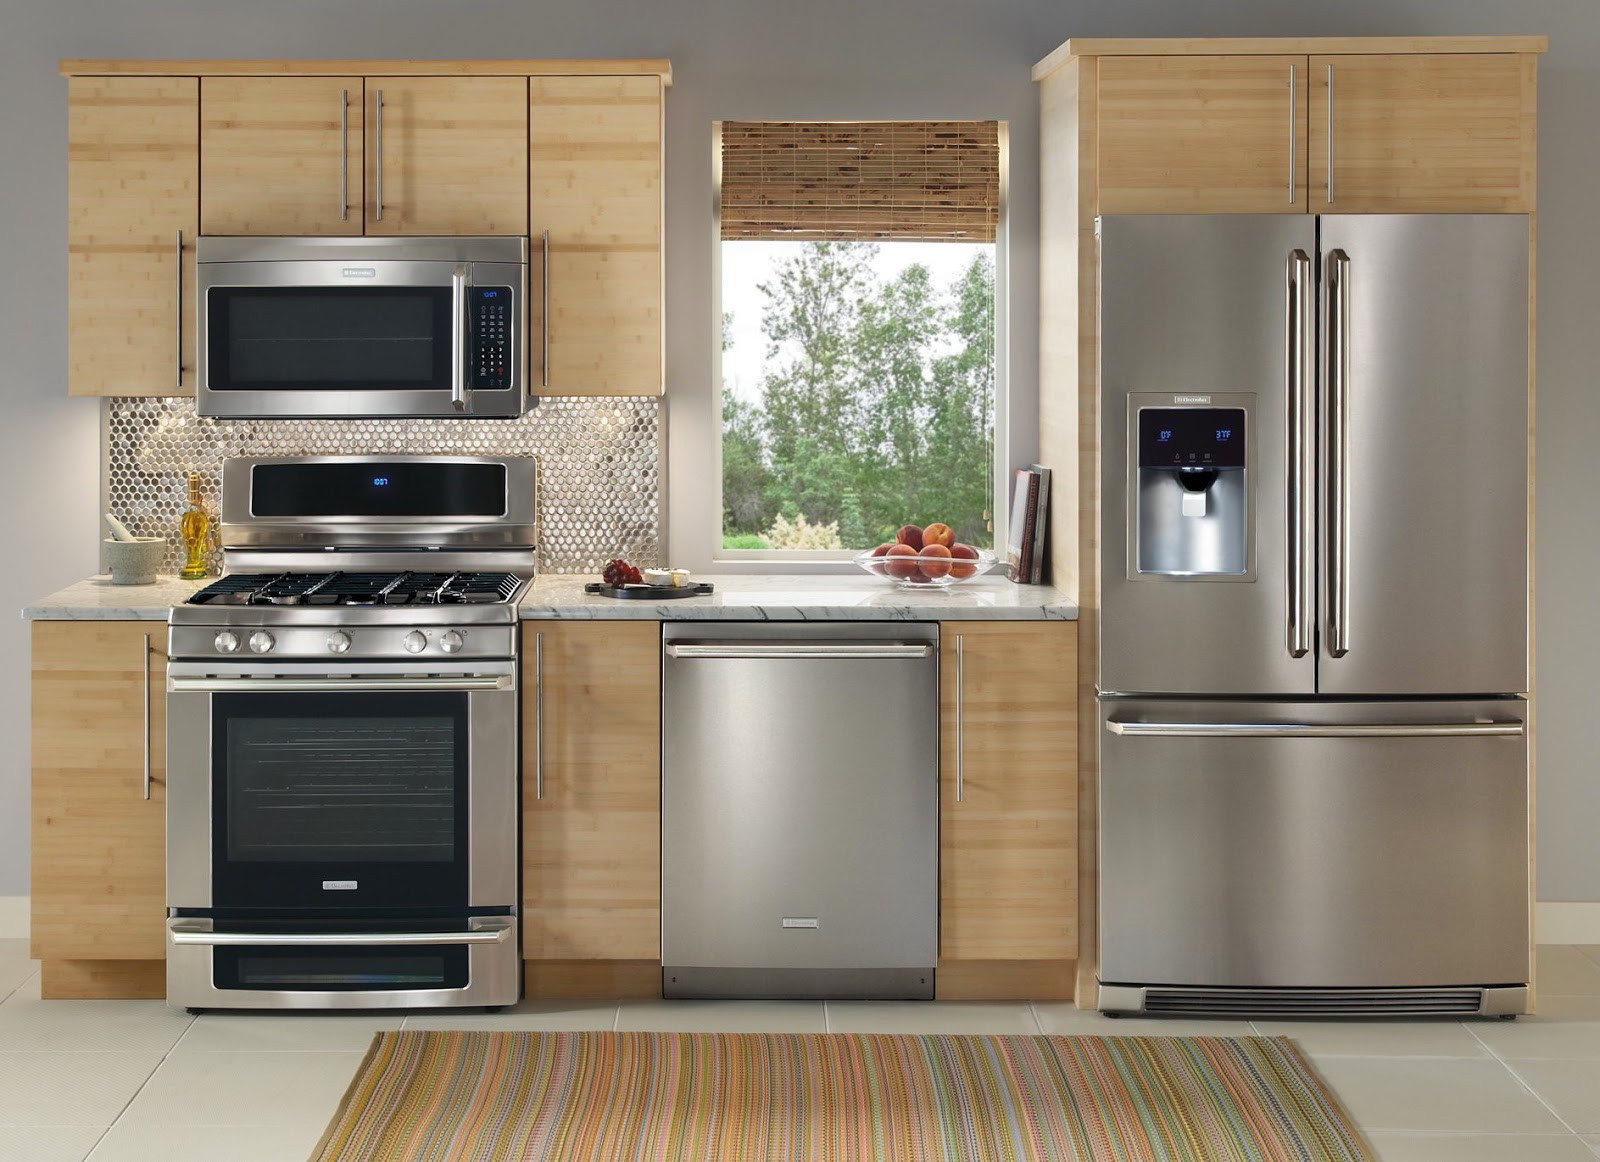 do you find an alternatives of stainless steel refrigerator ?